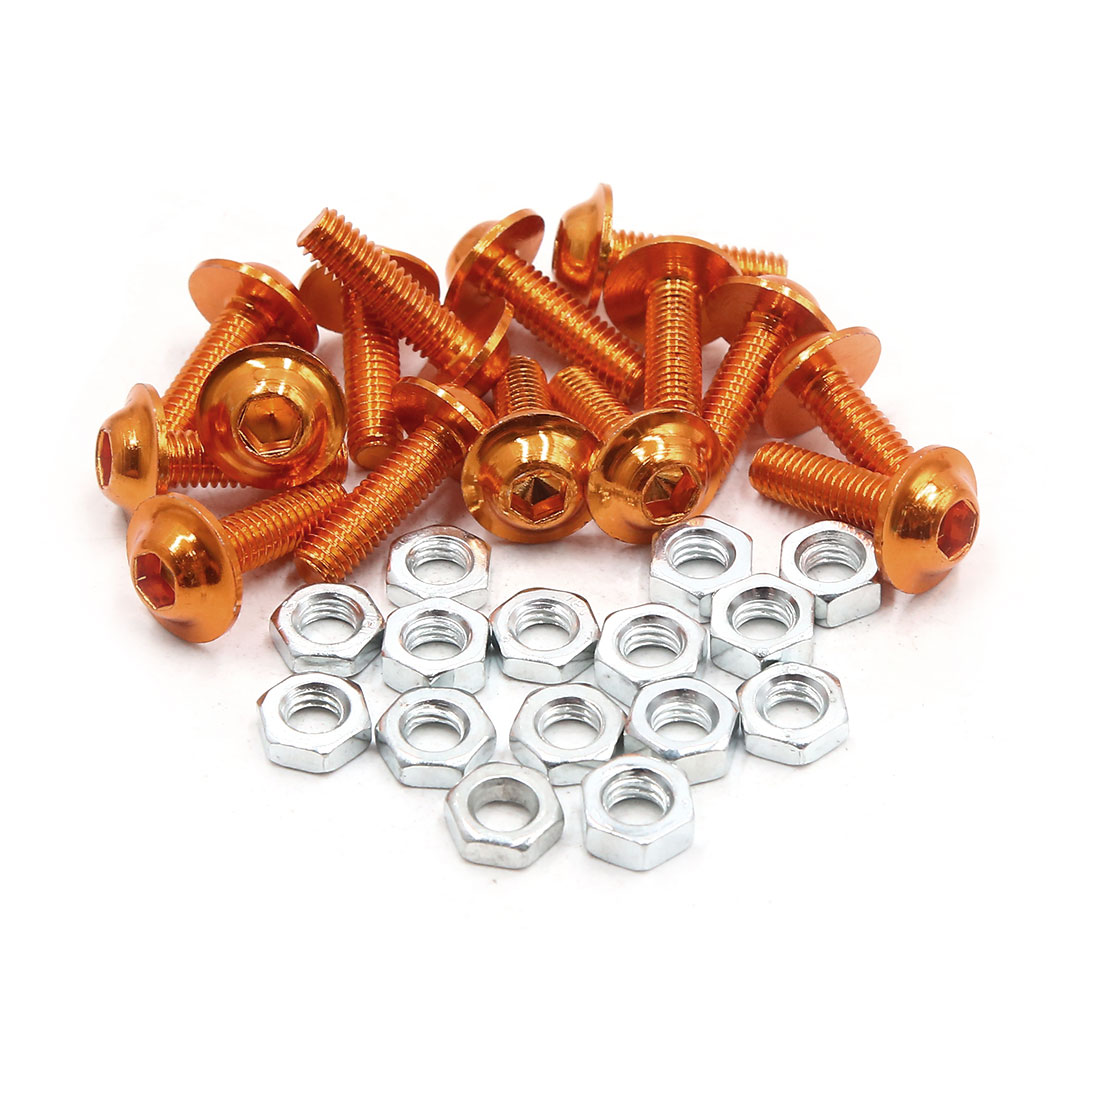 15pcs M6 Orange Aluminum Alloy Hex Socket Head Motorcycle Bolts Screws Nuts